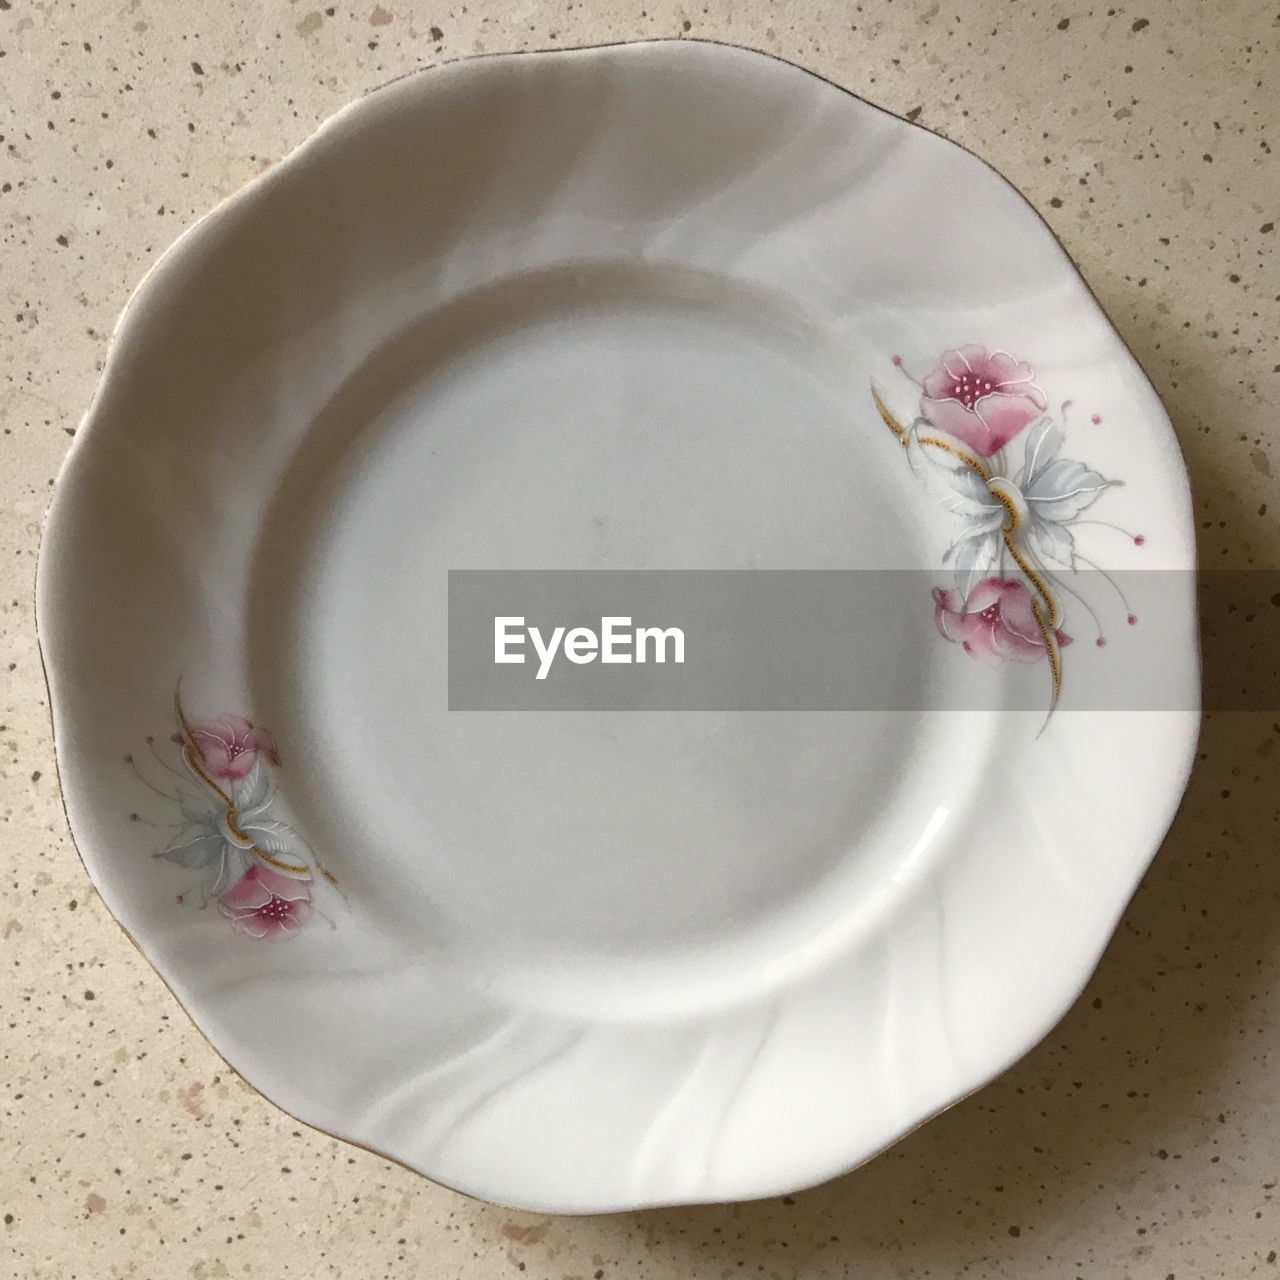 food and drink, plate, high angle view, indoors, freshness, food, wellbeing, directly above, close-up, white color, still life, flower, healthy eating, no people, drink, refreshment, table, flowering plant, beauty in nature, crockery, floral pattern